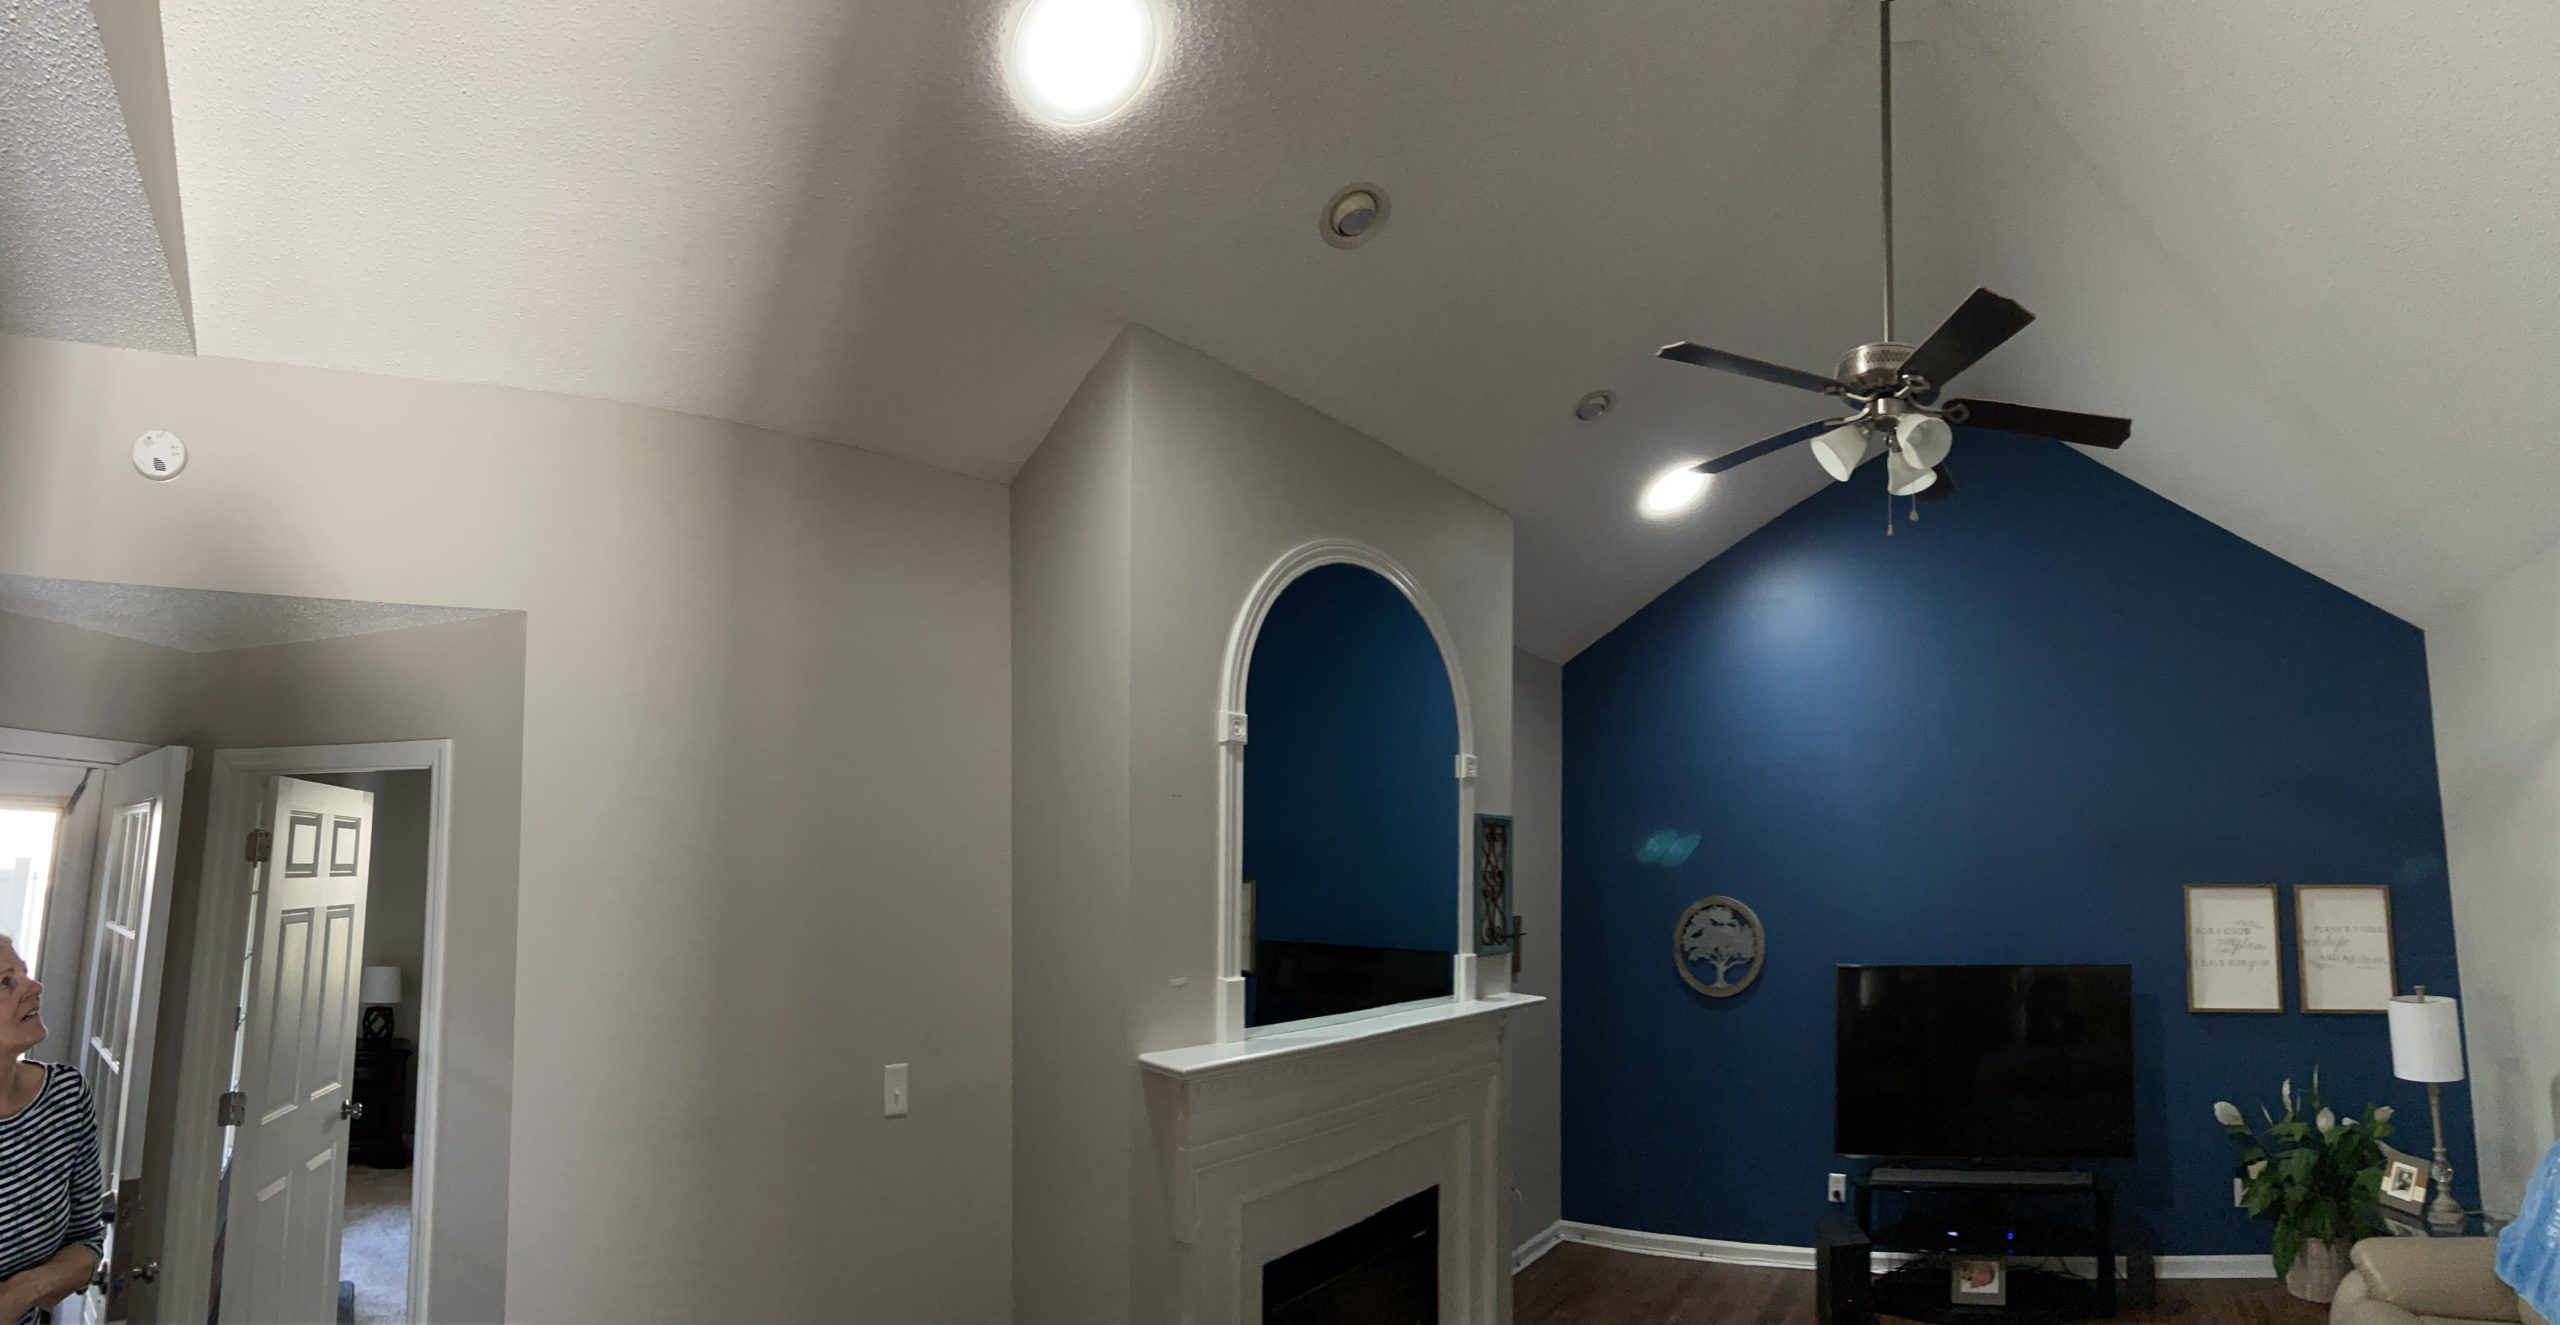 This is a view of the sun tunnel installed in the ceiling and shining light in the room.